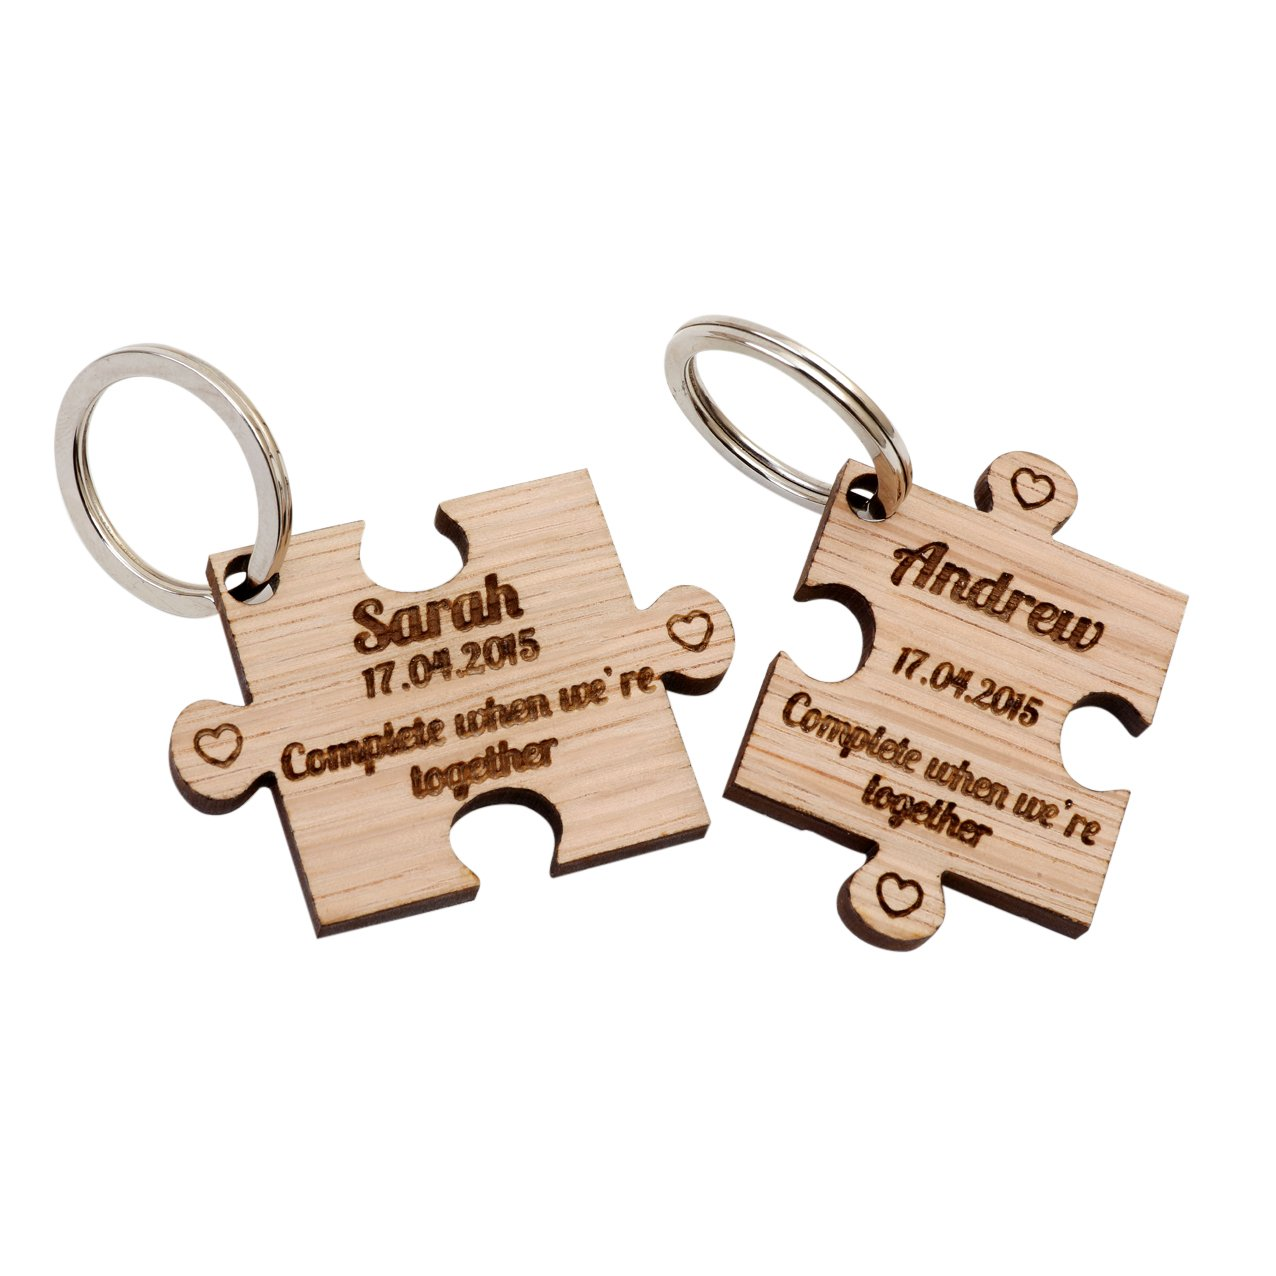 2 x Personalised Jigsaw Puzzle Piece Wooden Keyrings Each Engraved with a Name & Date AYOT